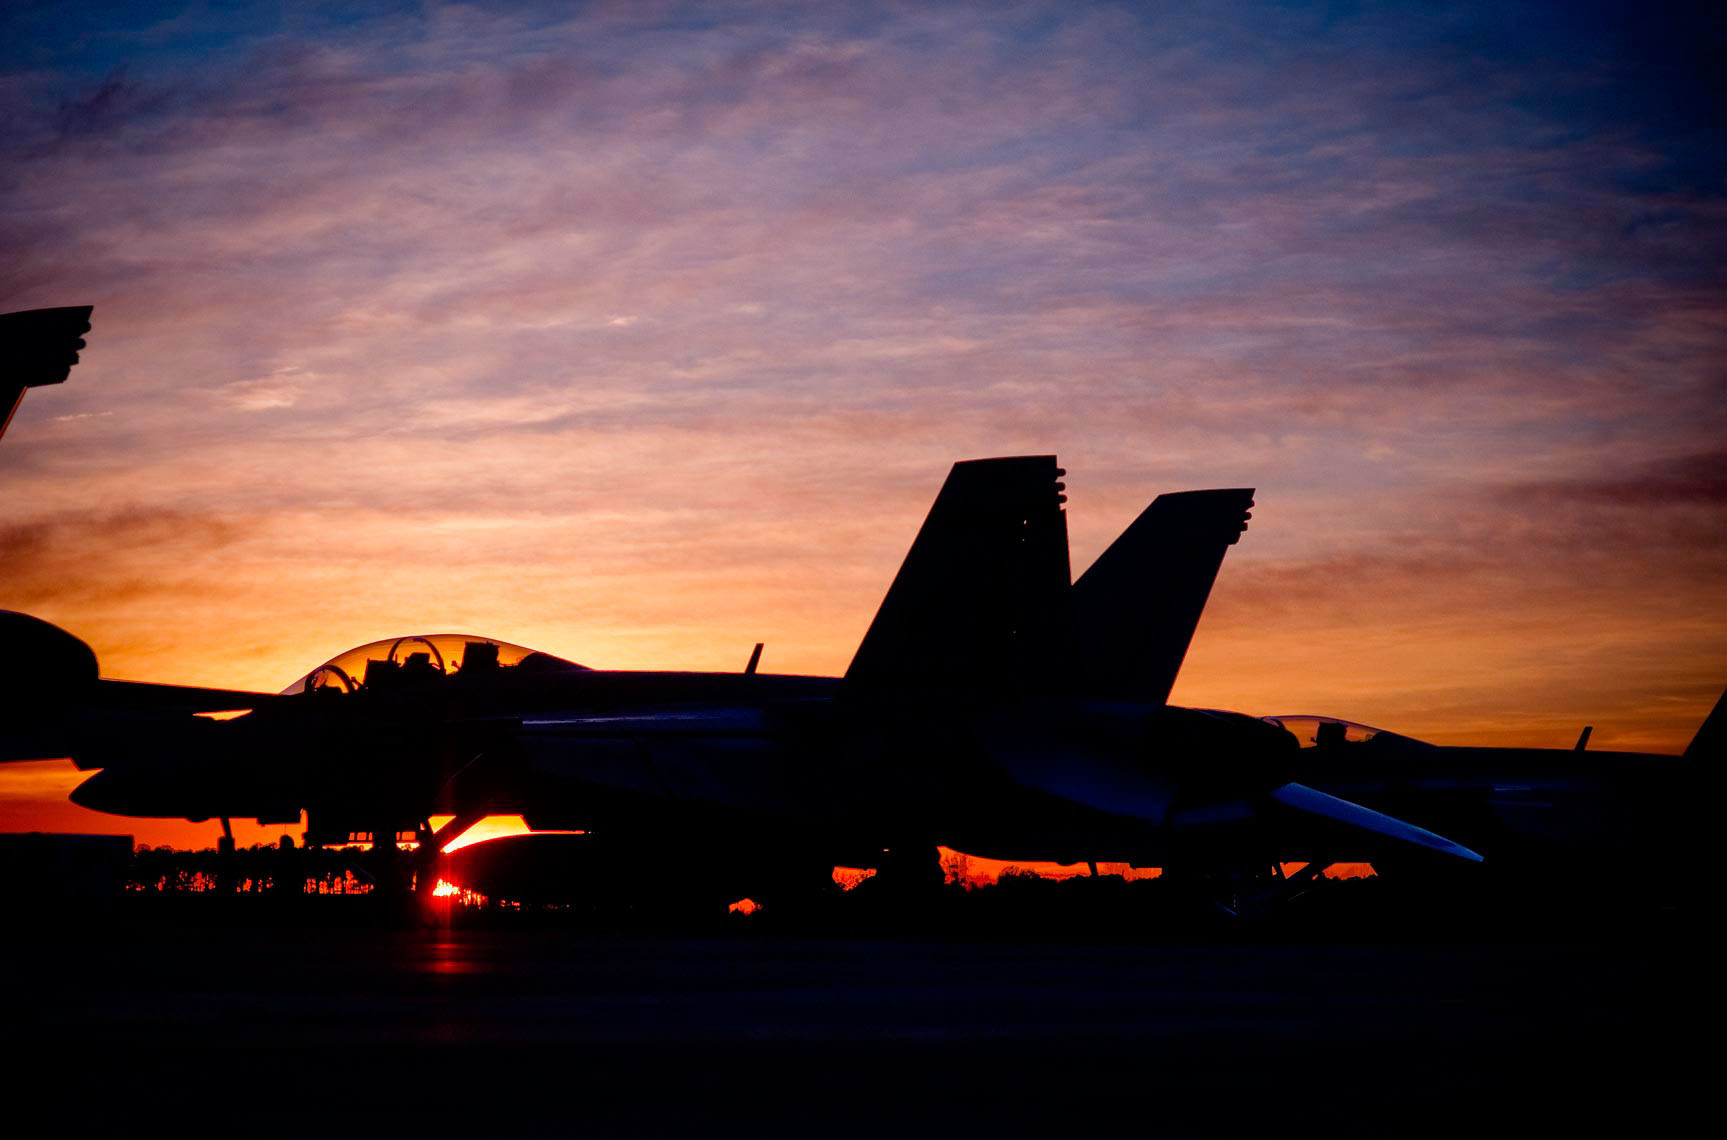 US-NAVY_AC-F18_Sunset.jpg